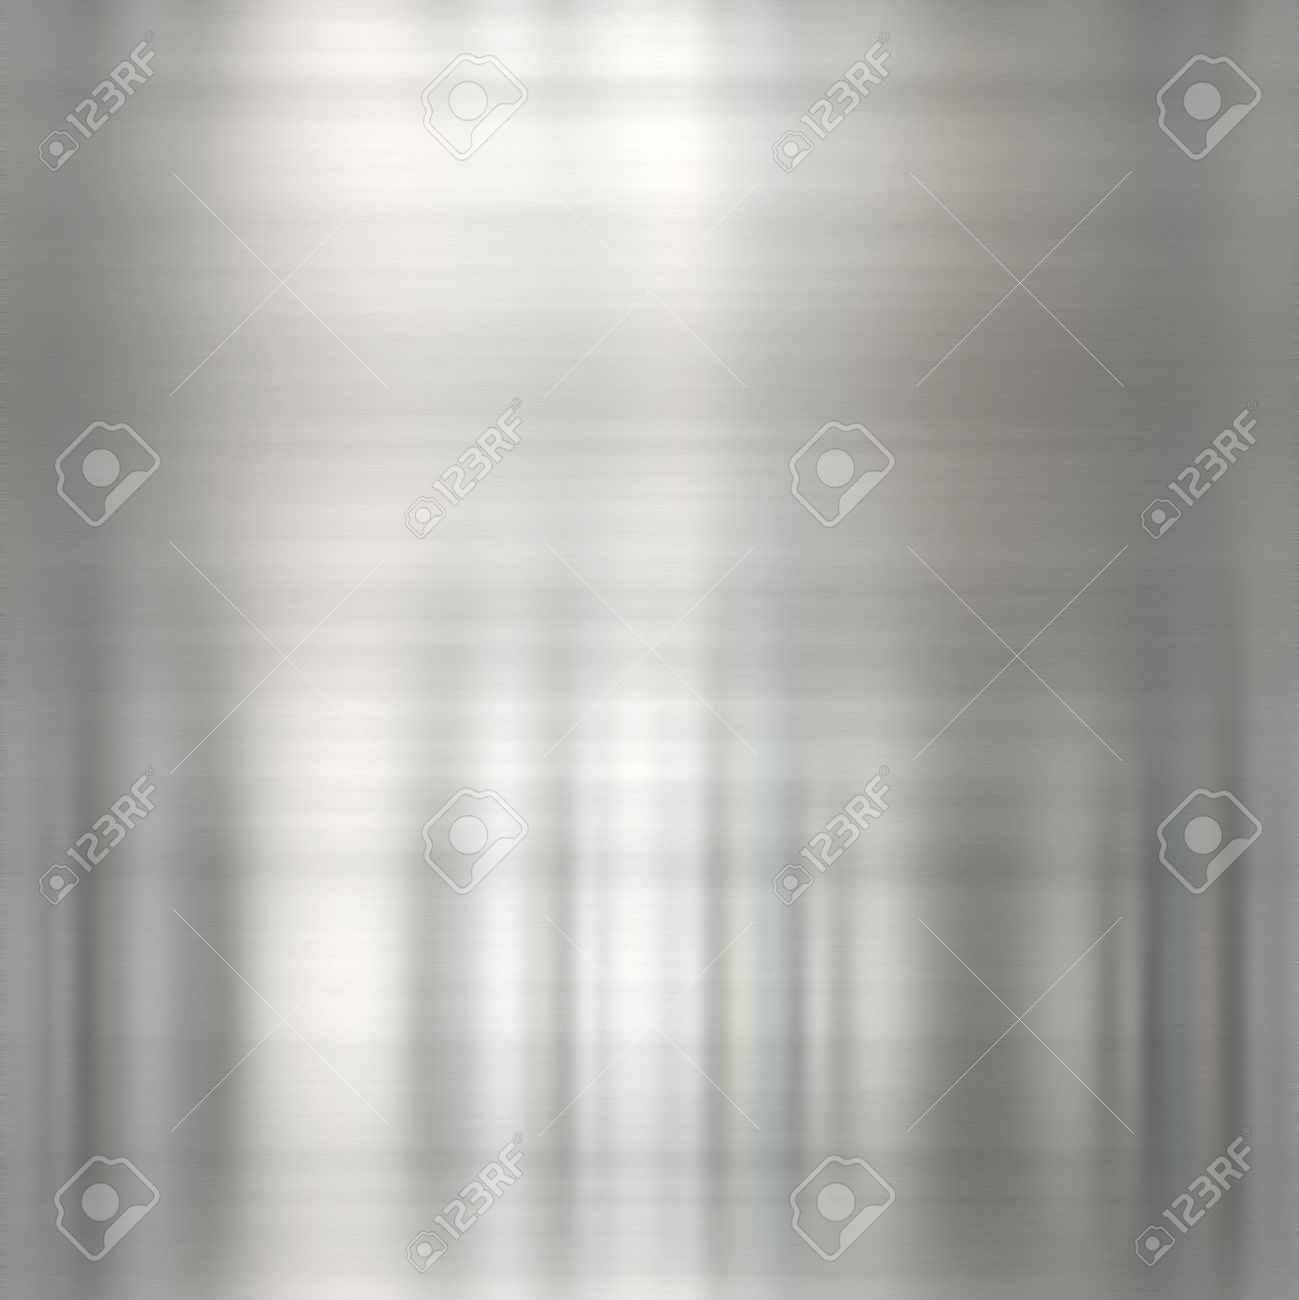 An illustration of a brushed metal texture Stock Photo - 6735484